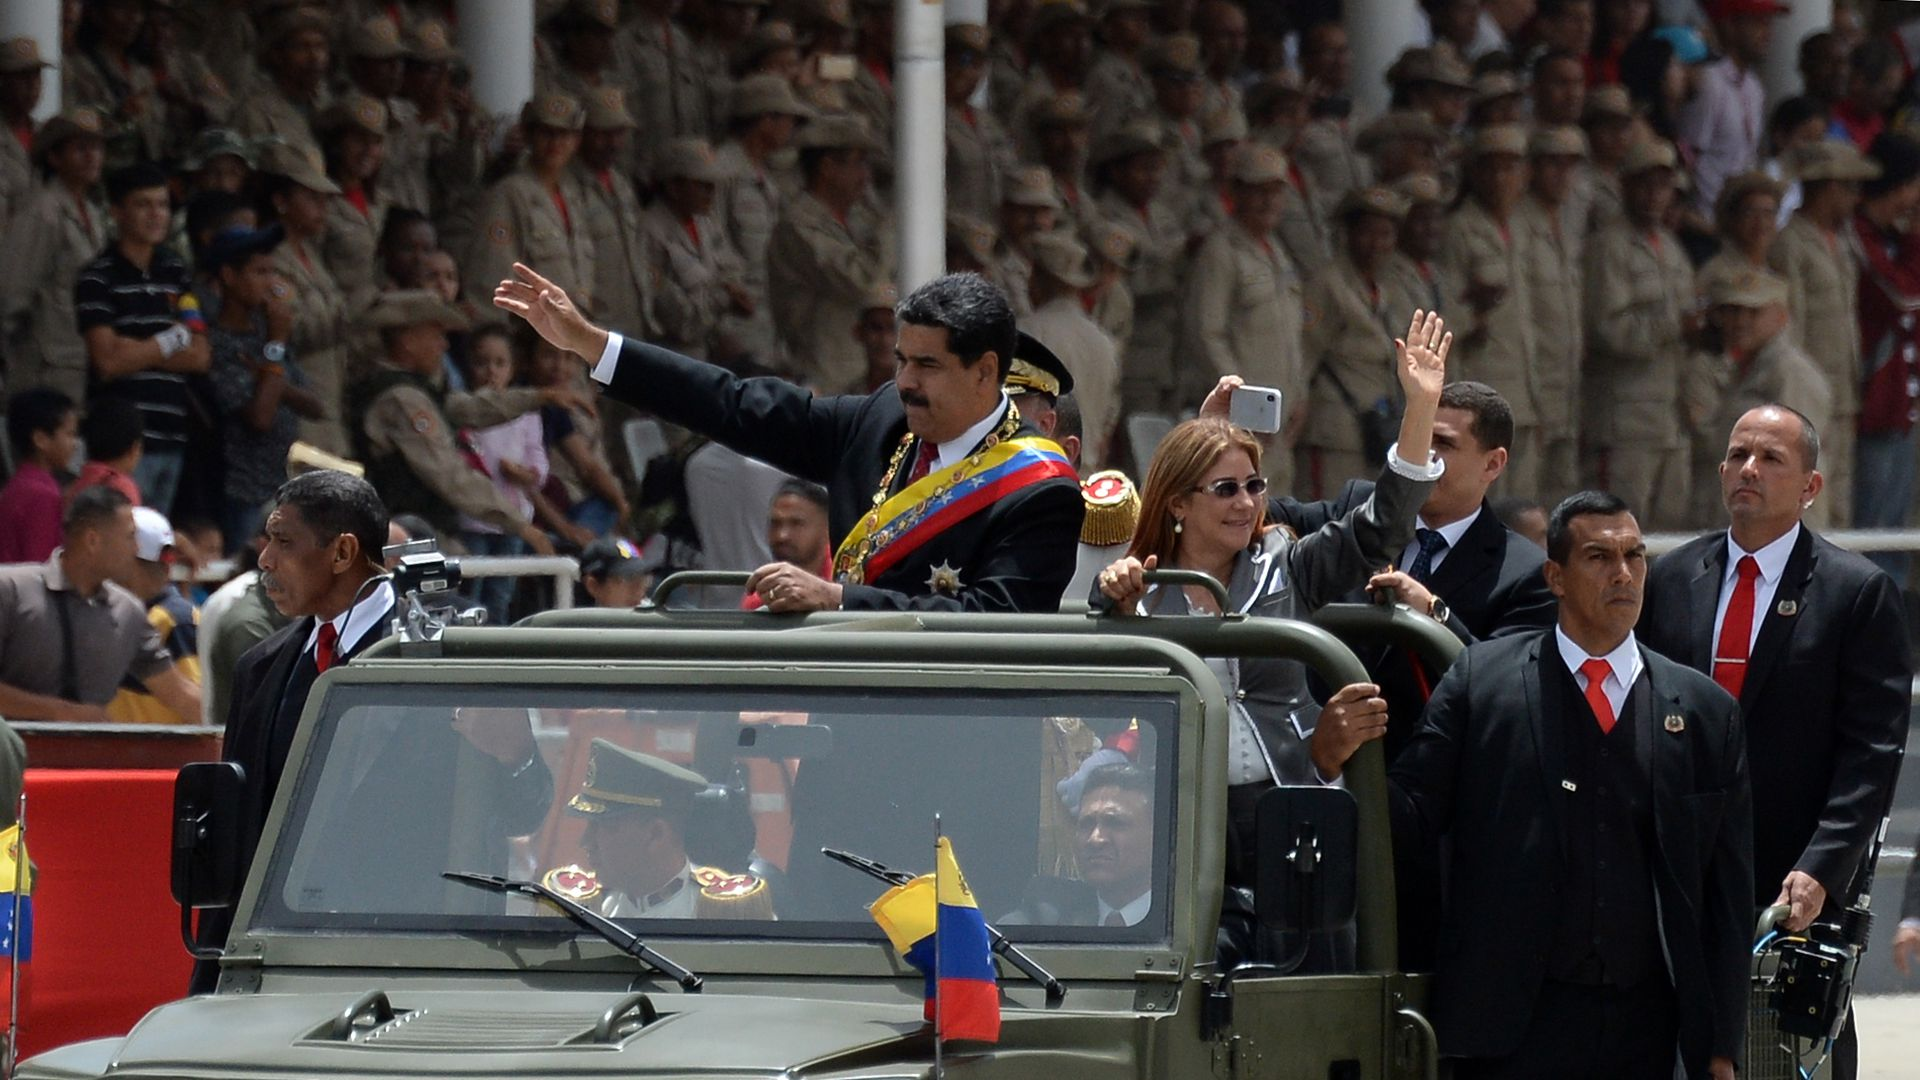 Maduro in military vehicle